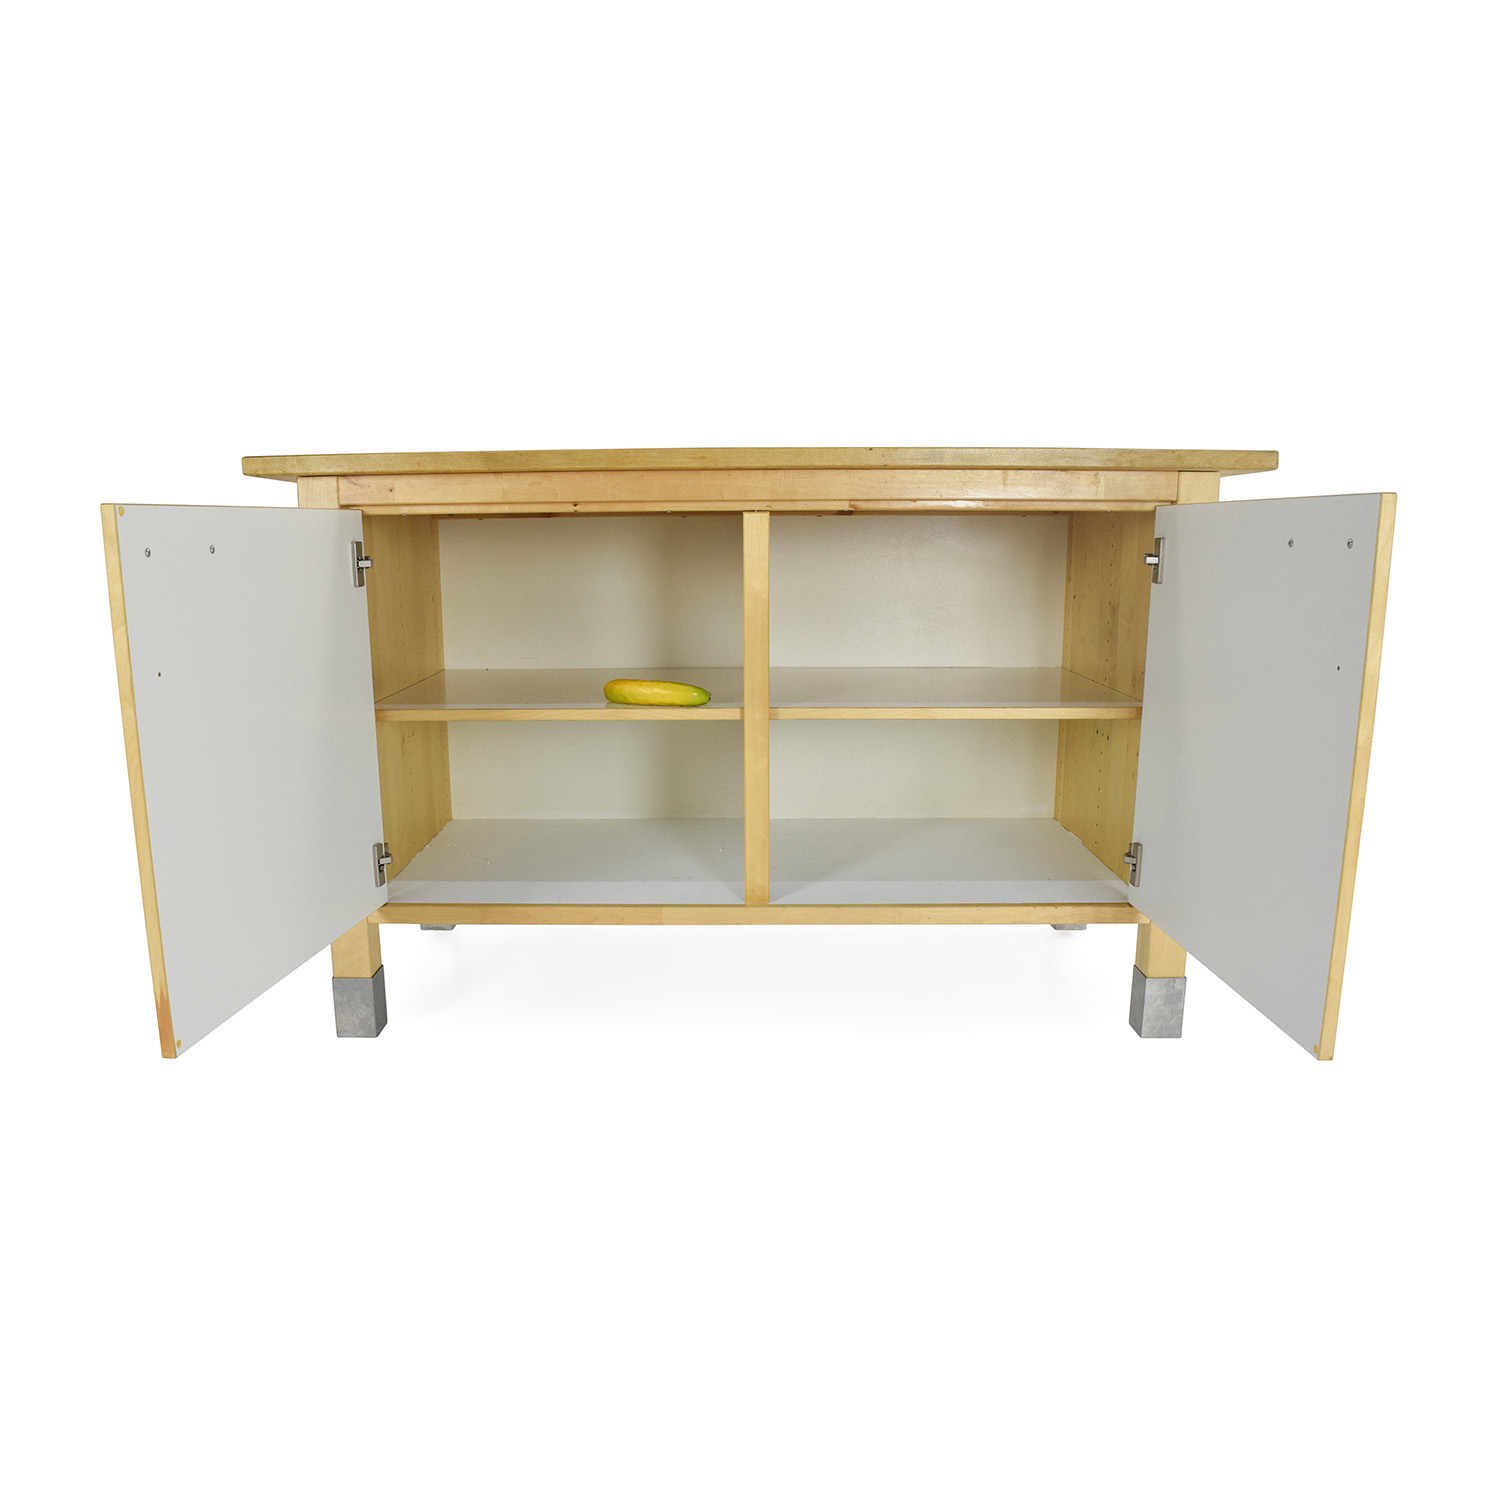 IKEA Kitchen Block Cabinet Table / Storage